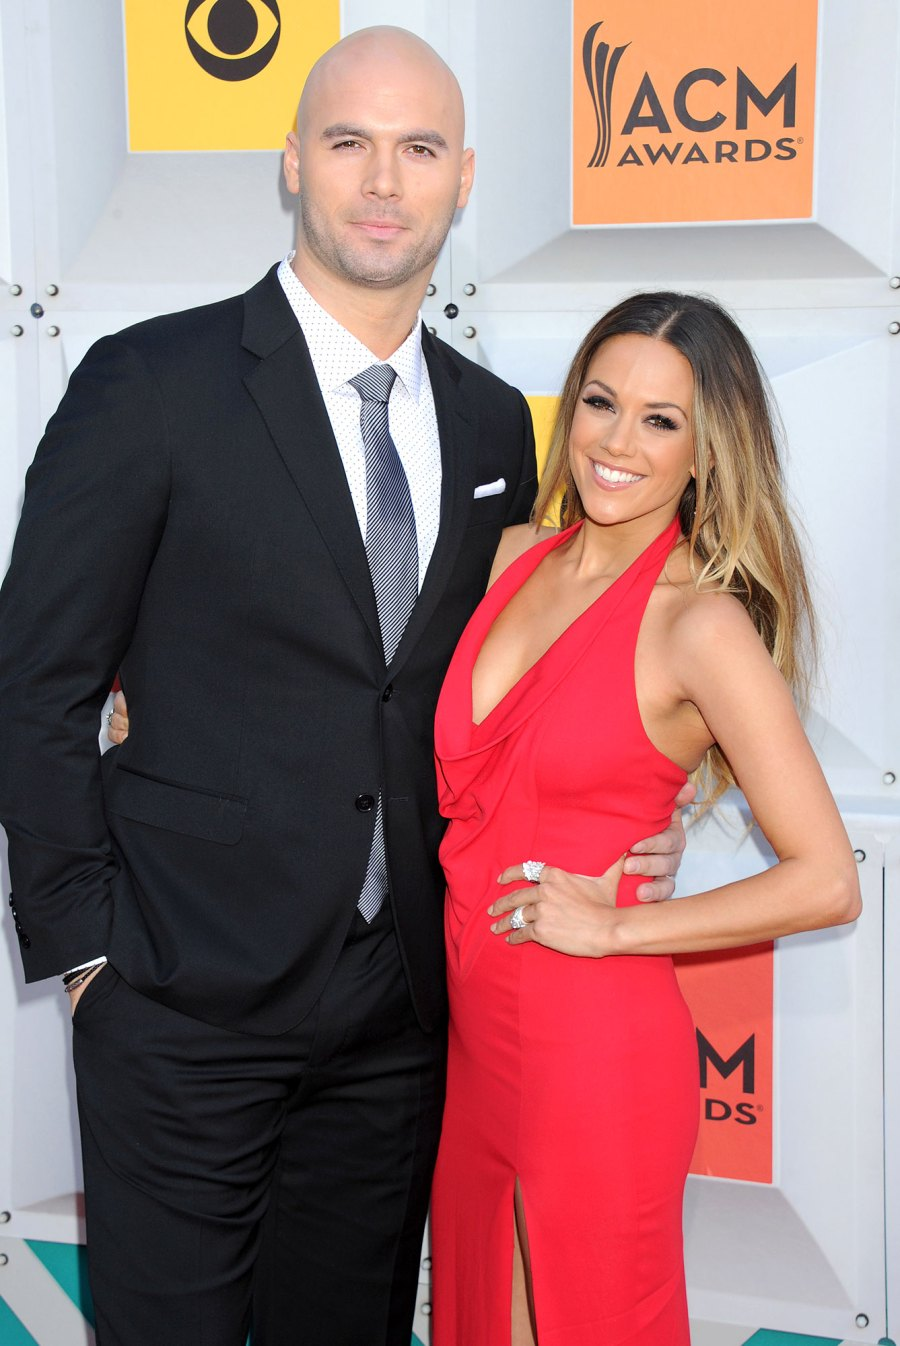 Jana Kramer and Mike Caussin Divorce Everything We Know